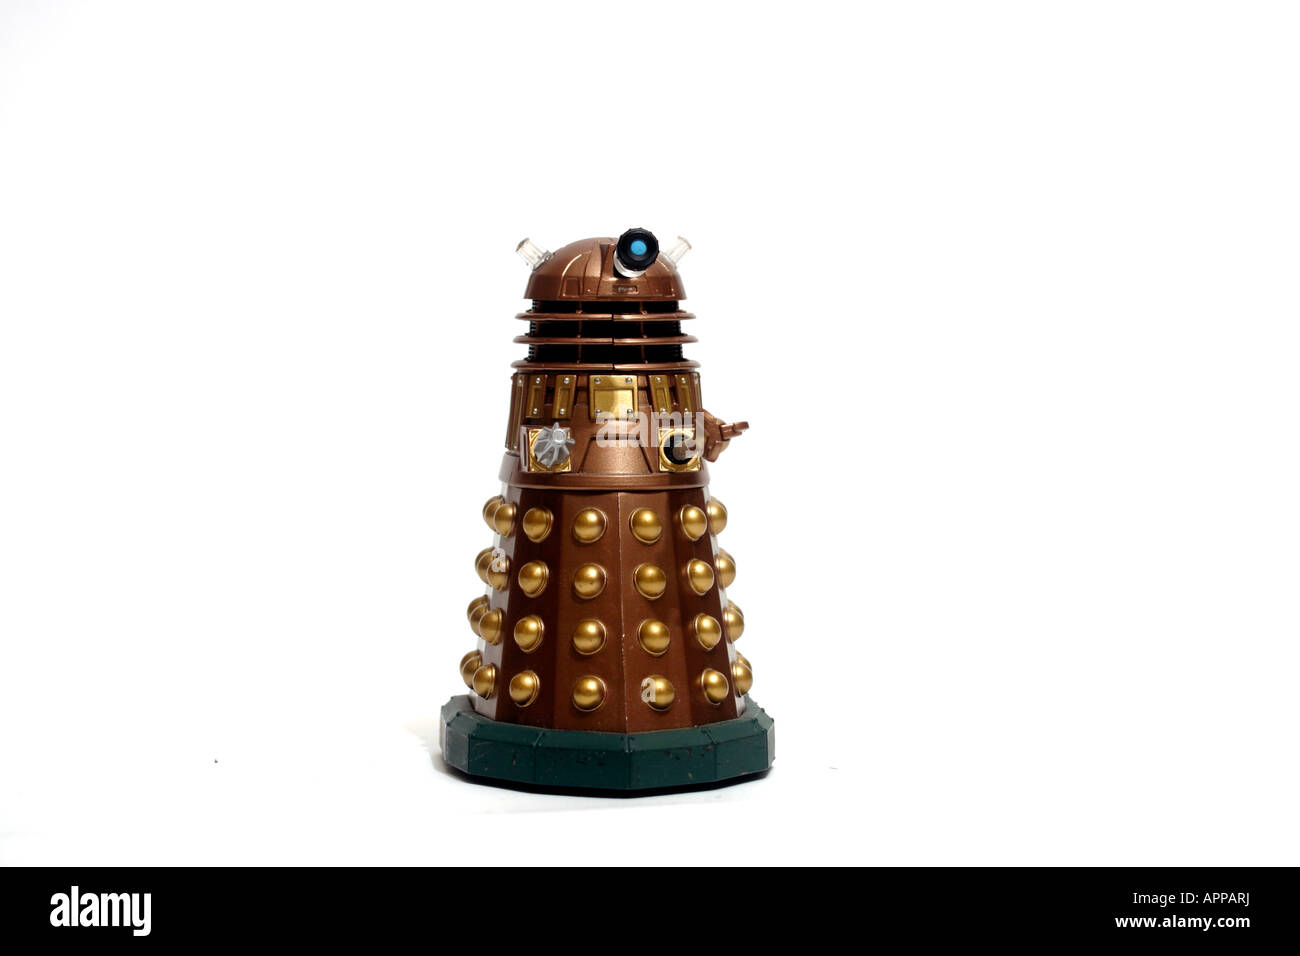 A Dalek model toy, from the BBC Television series Doctor Who - Stock Image